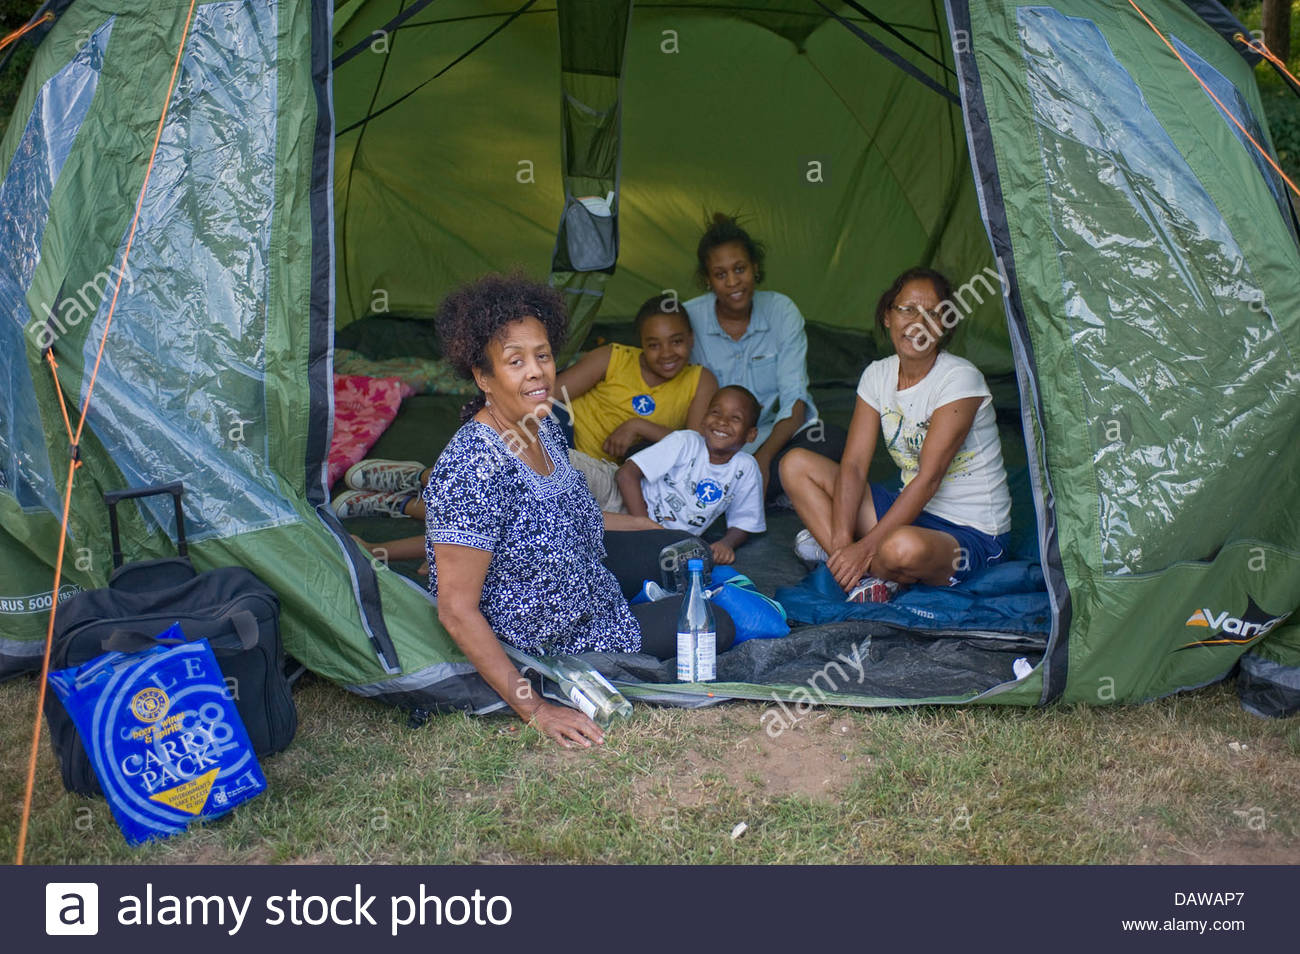 A British Black Family Going Camping For The First Time